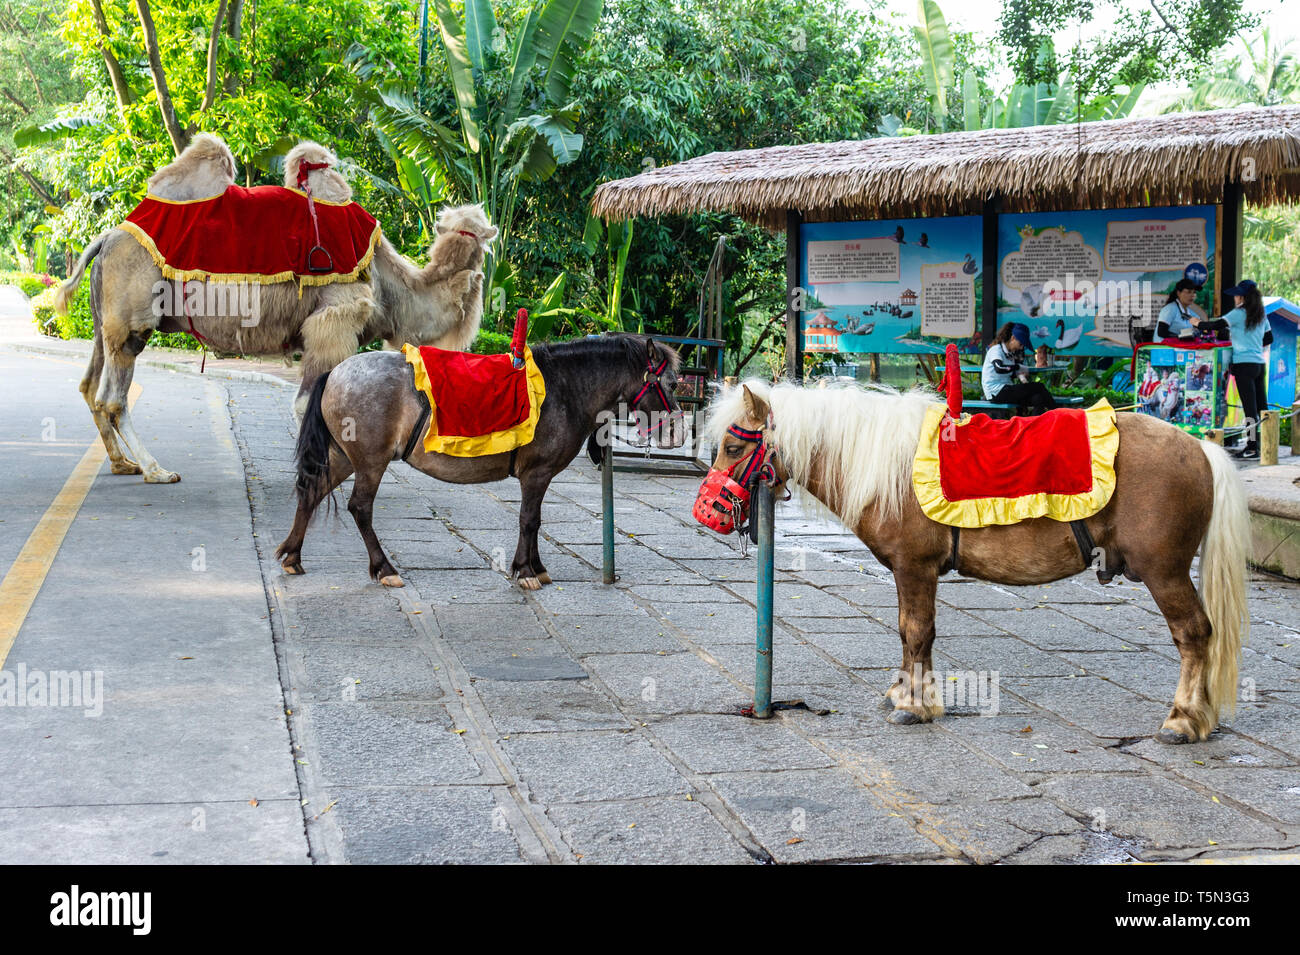 Sad looking show ponies waiting for customers at a zoo in Shenzhen China - Stock Image